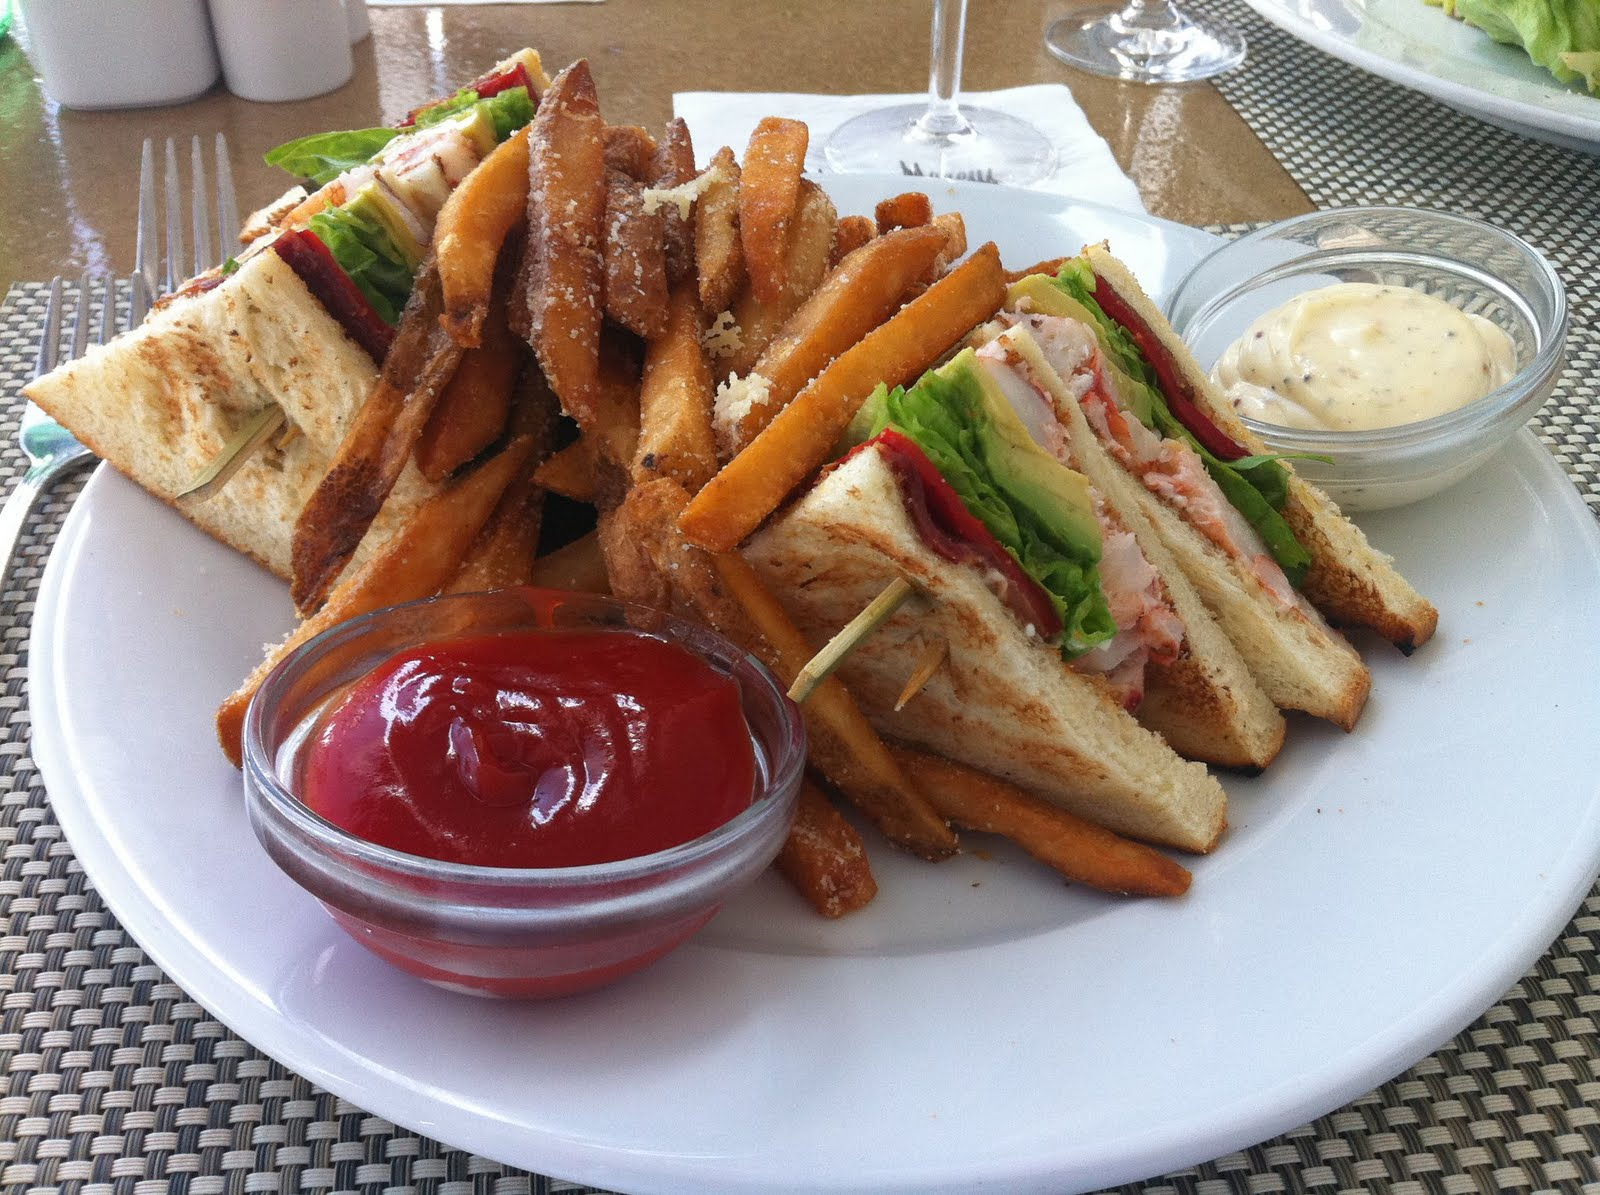 ... club sandwich lobster club sandwich at hubbell hudson kitchen lobster